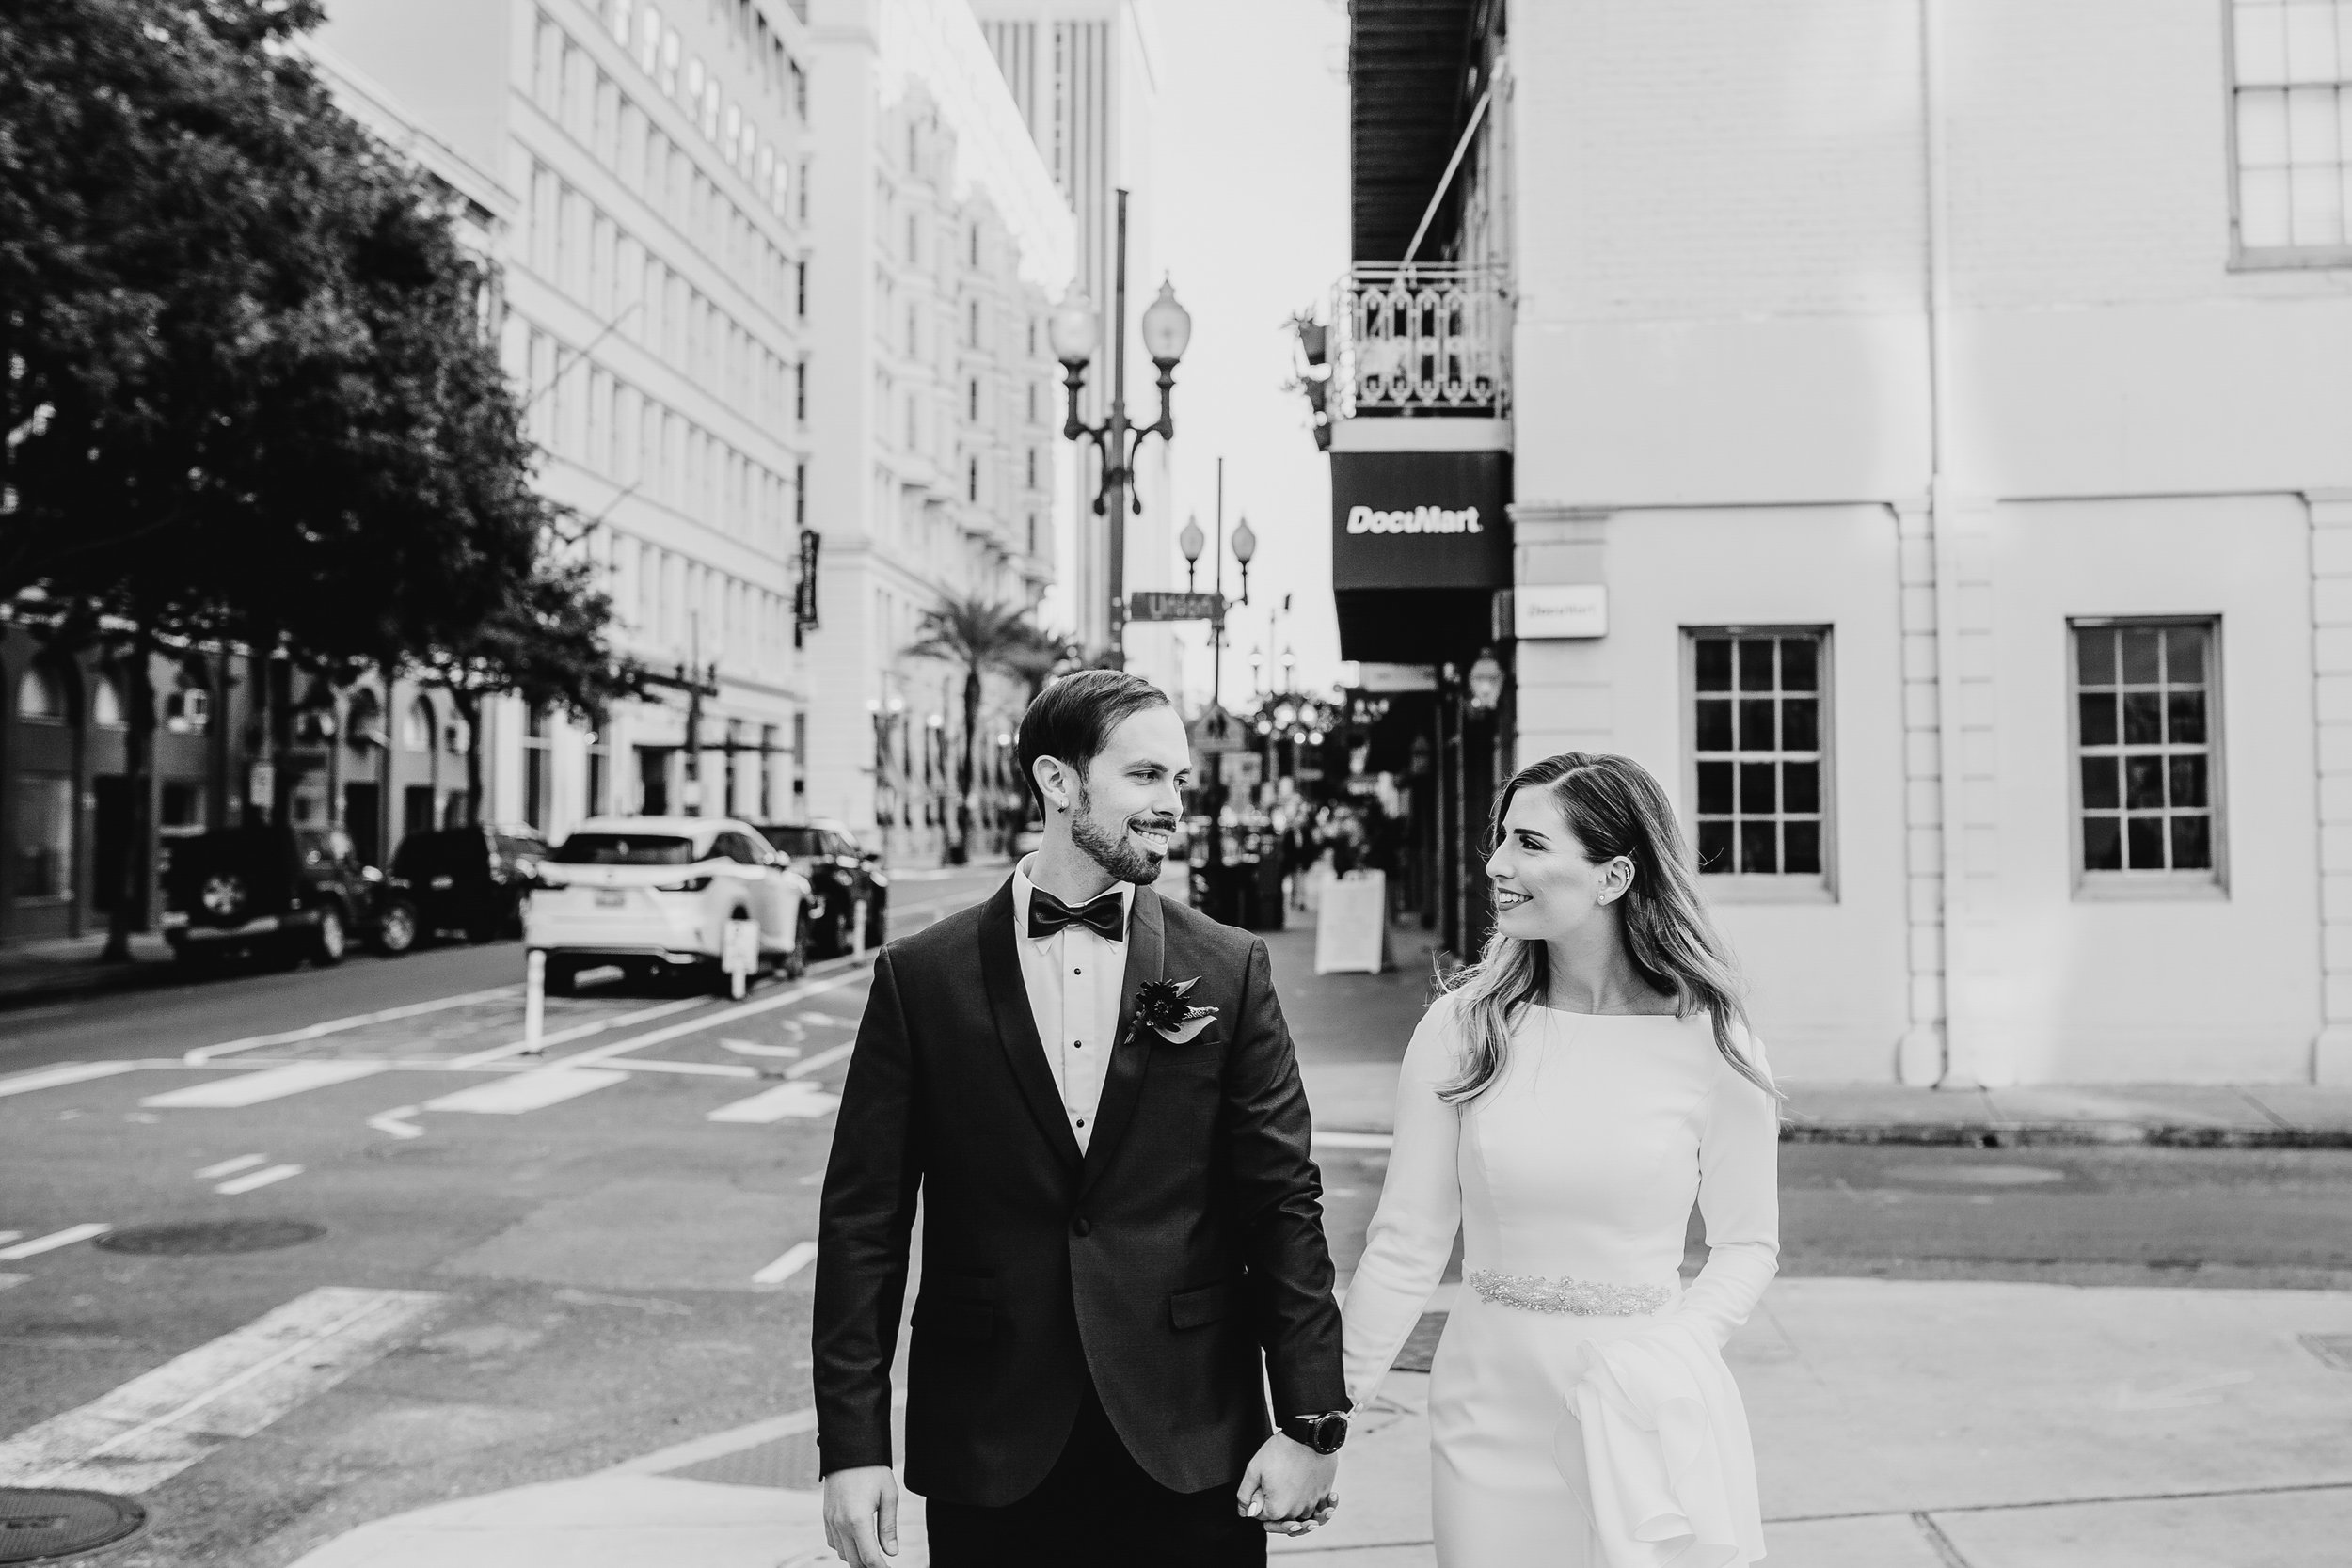 Wedding at Catahoula Hotel New Orleans Wedding Photographer48.jpg